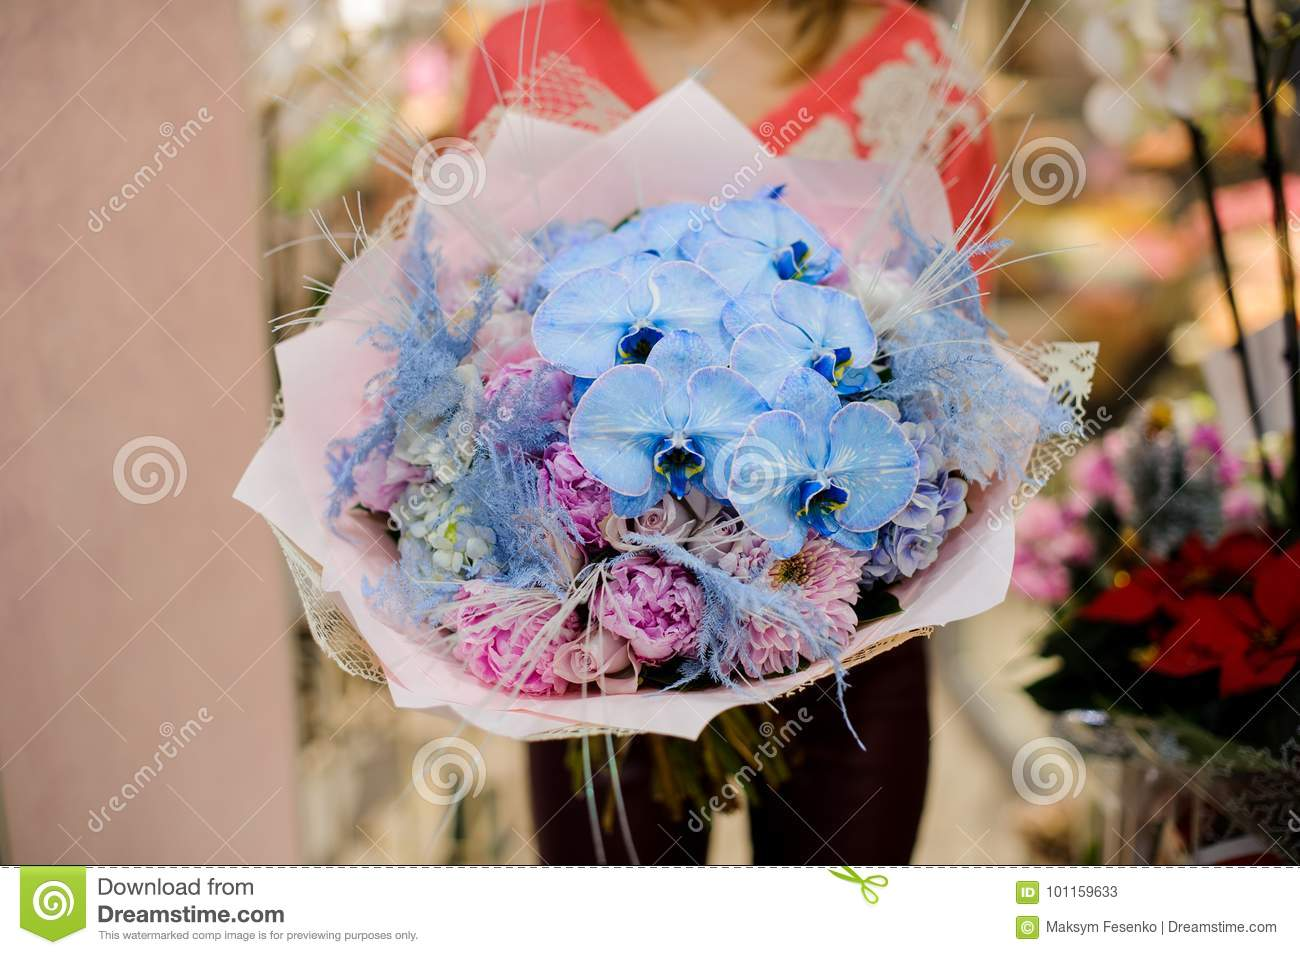 Pretty winter bouquet of blue and pink flowers stock image image download pretty winter bouquet of blue and pink flowers stock image image of blooming mightylinksfo